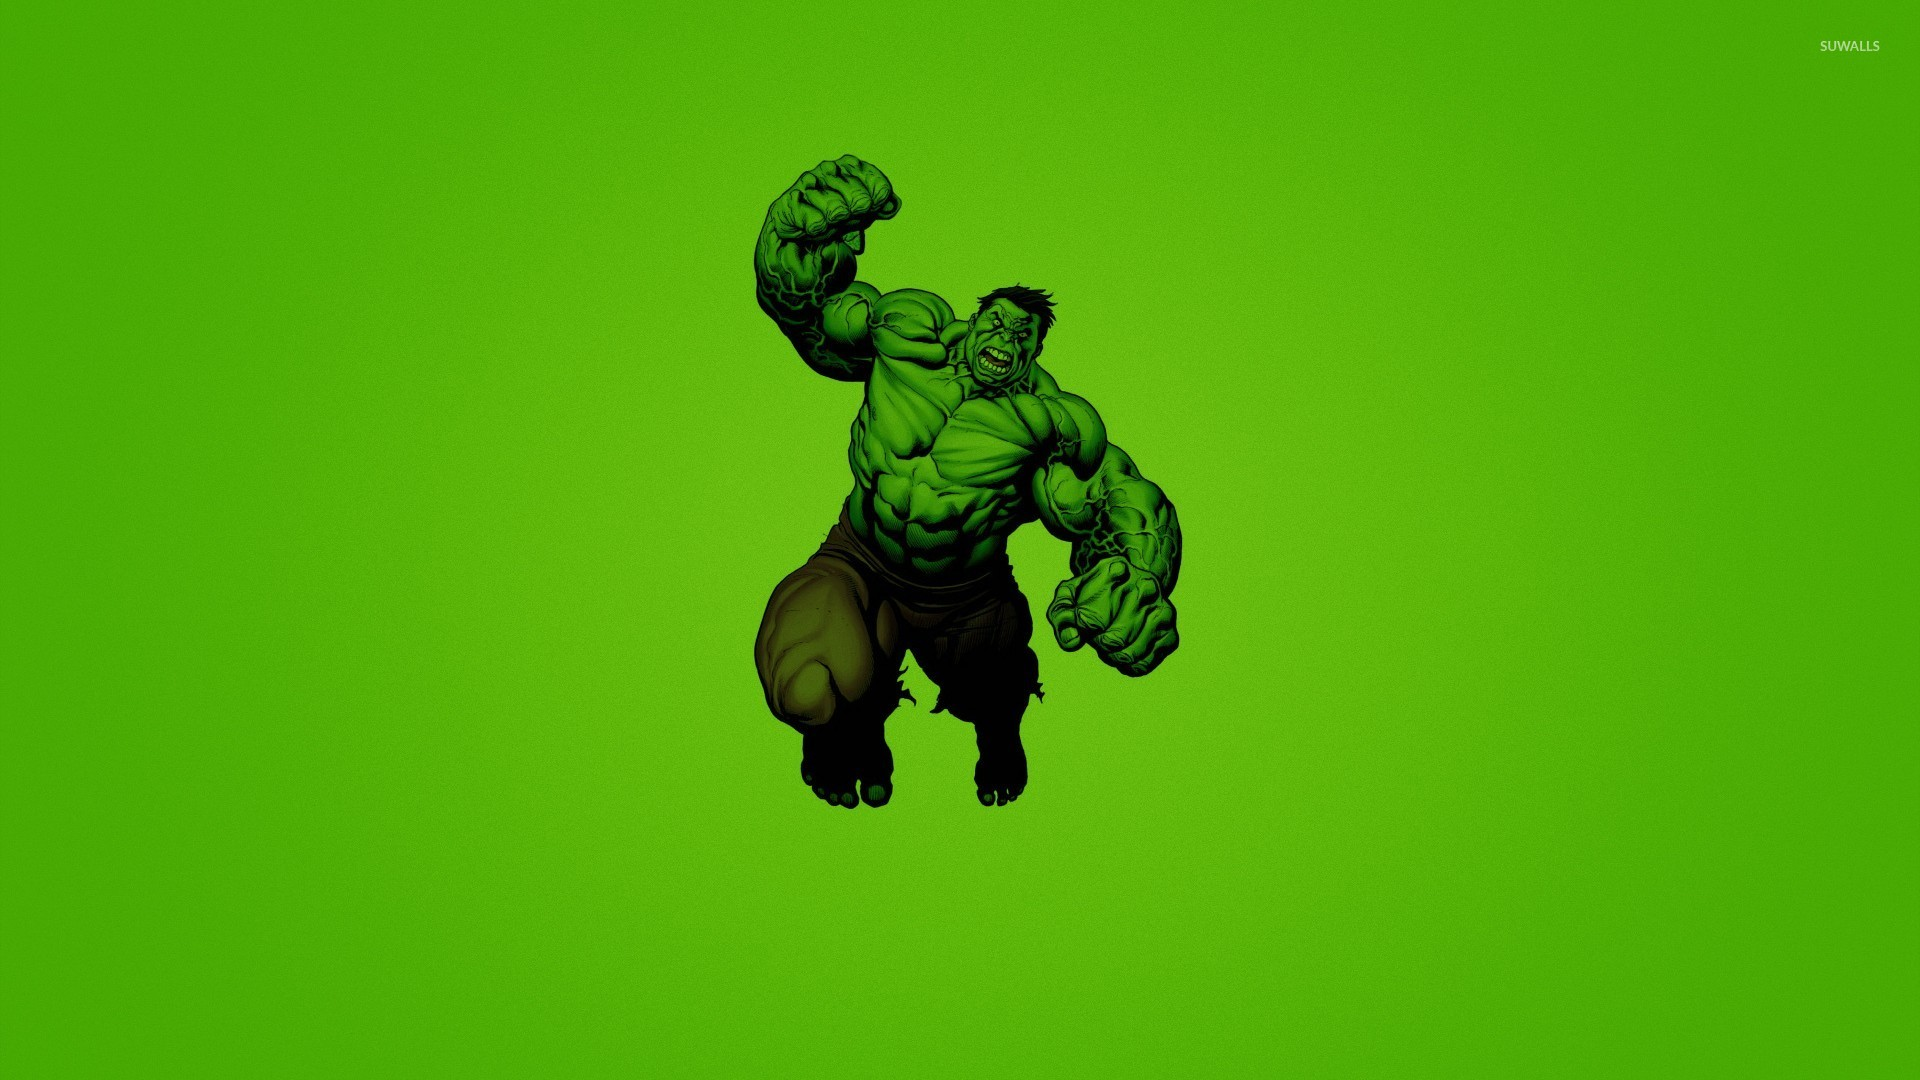 Hulk wallpaper Comic wallpapers 43682